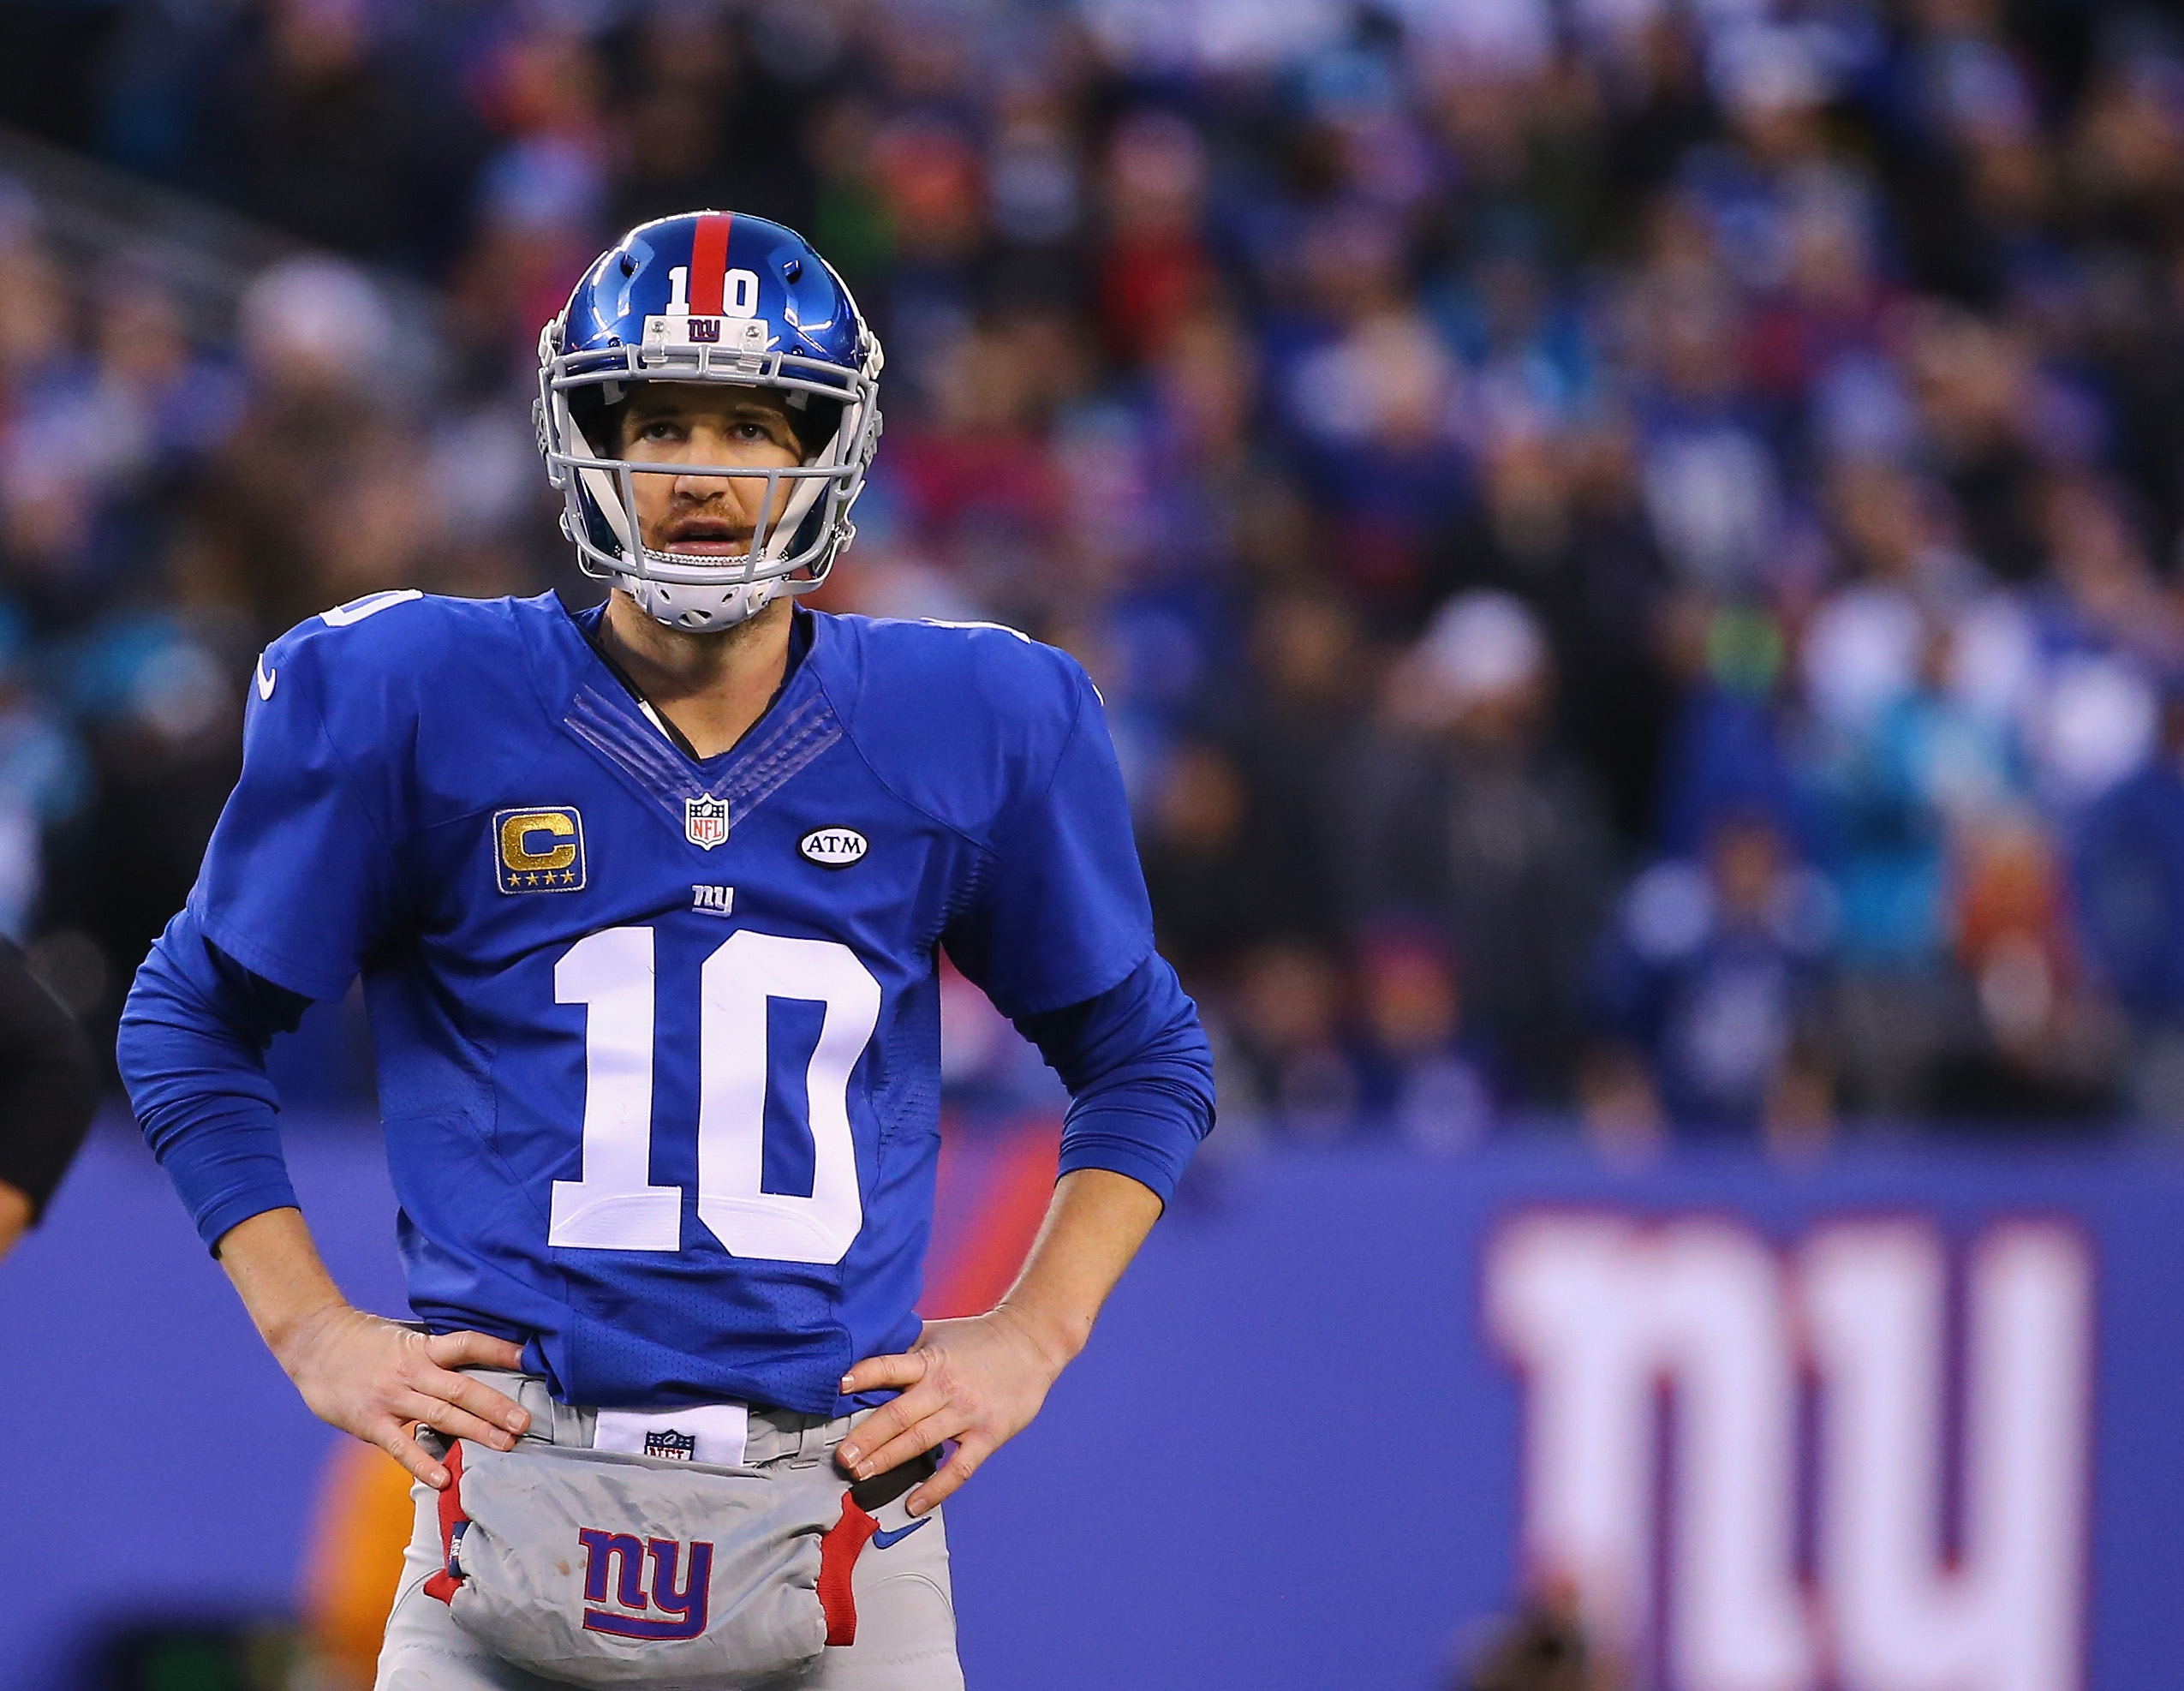 Watch: Peyton Manning Pokes Fun at Eli Manning's Super Bowl Stare on 'The Tonight Show'